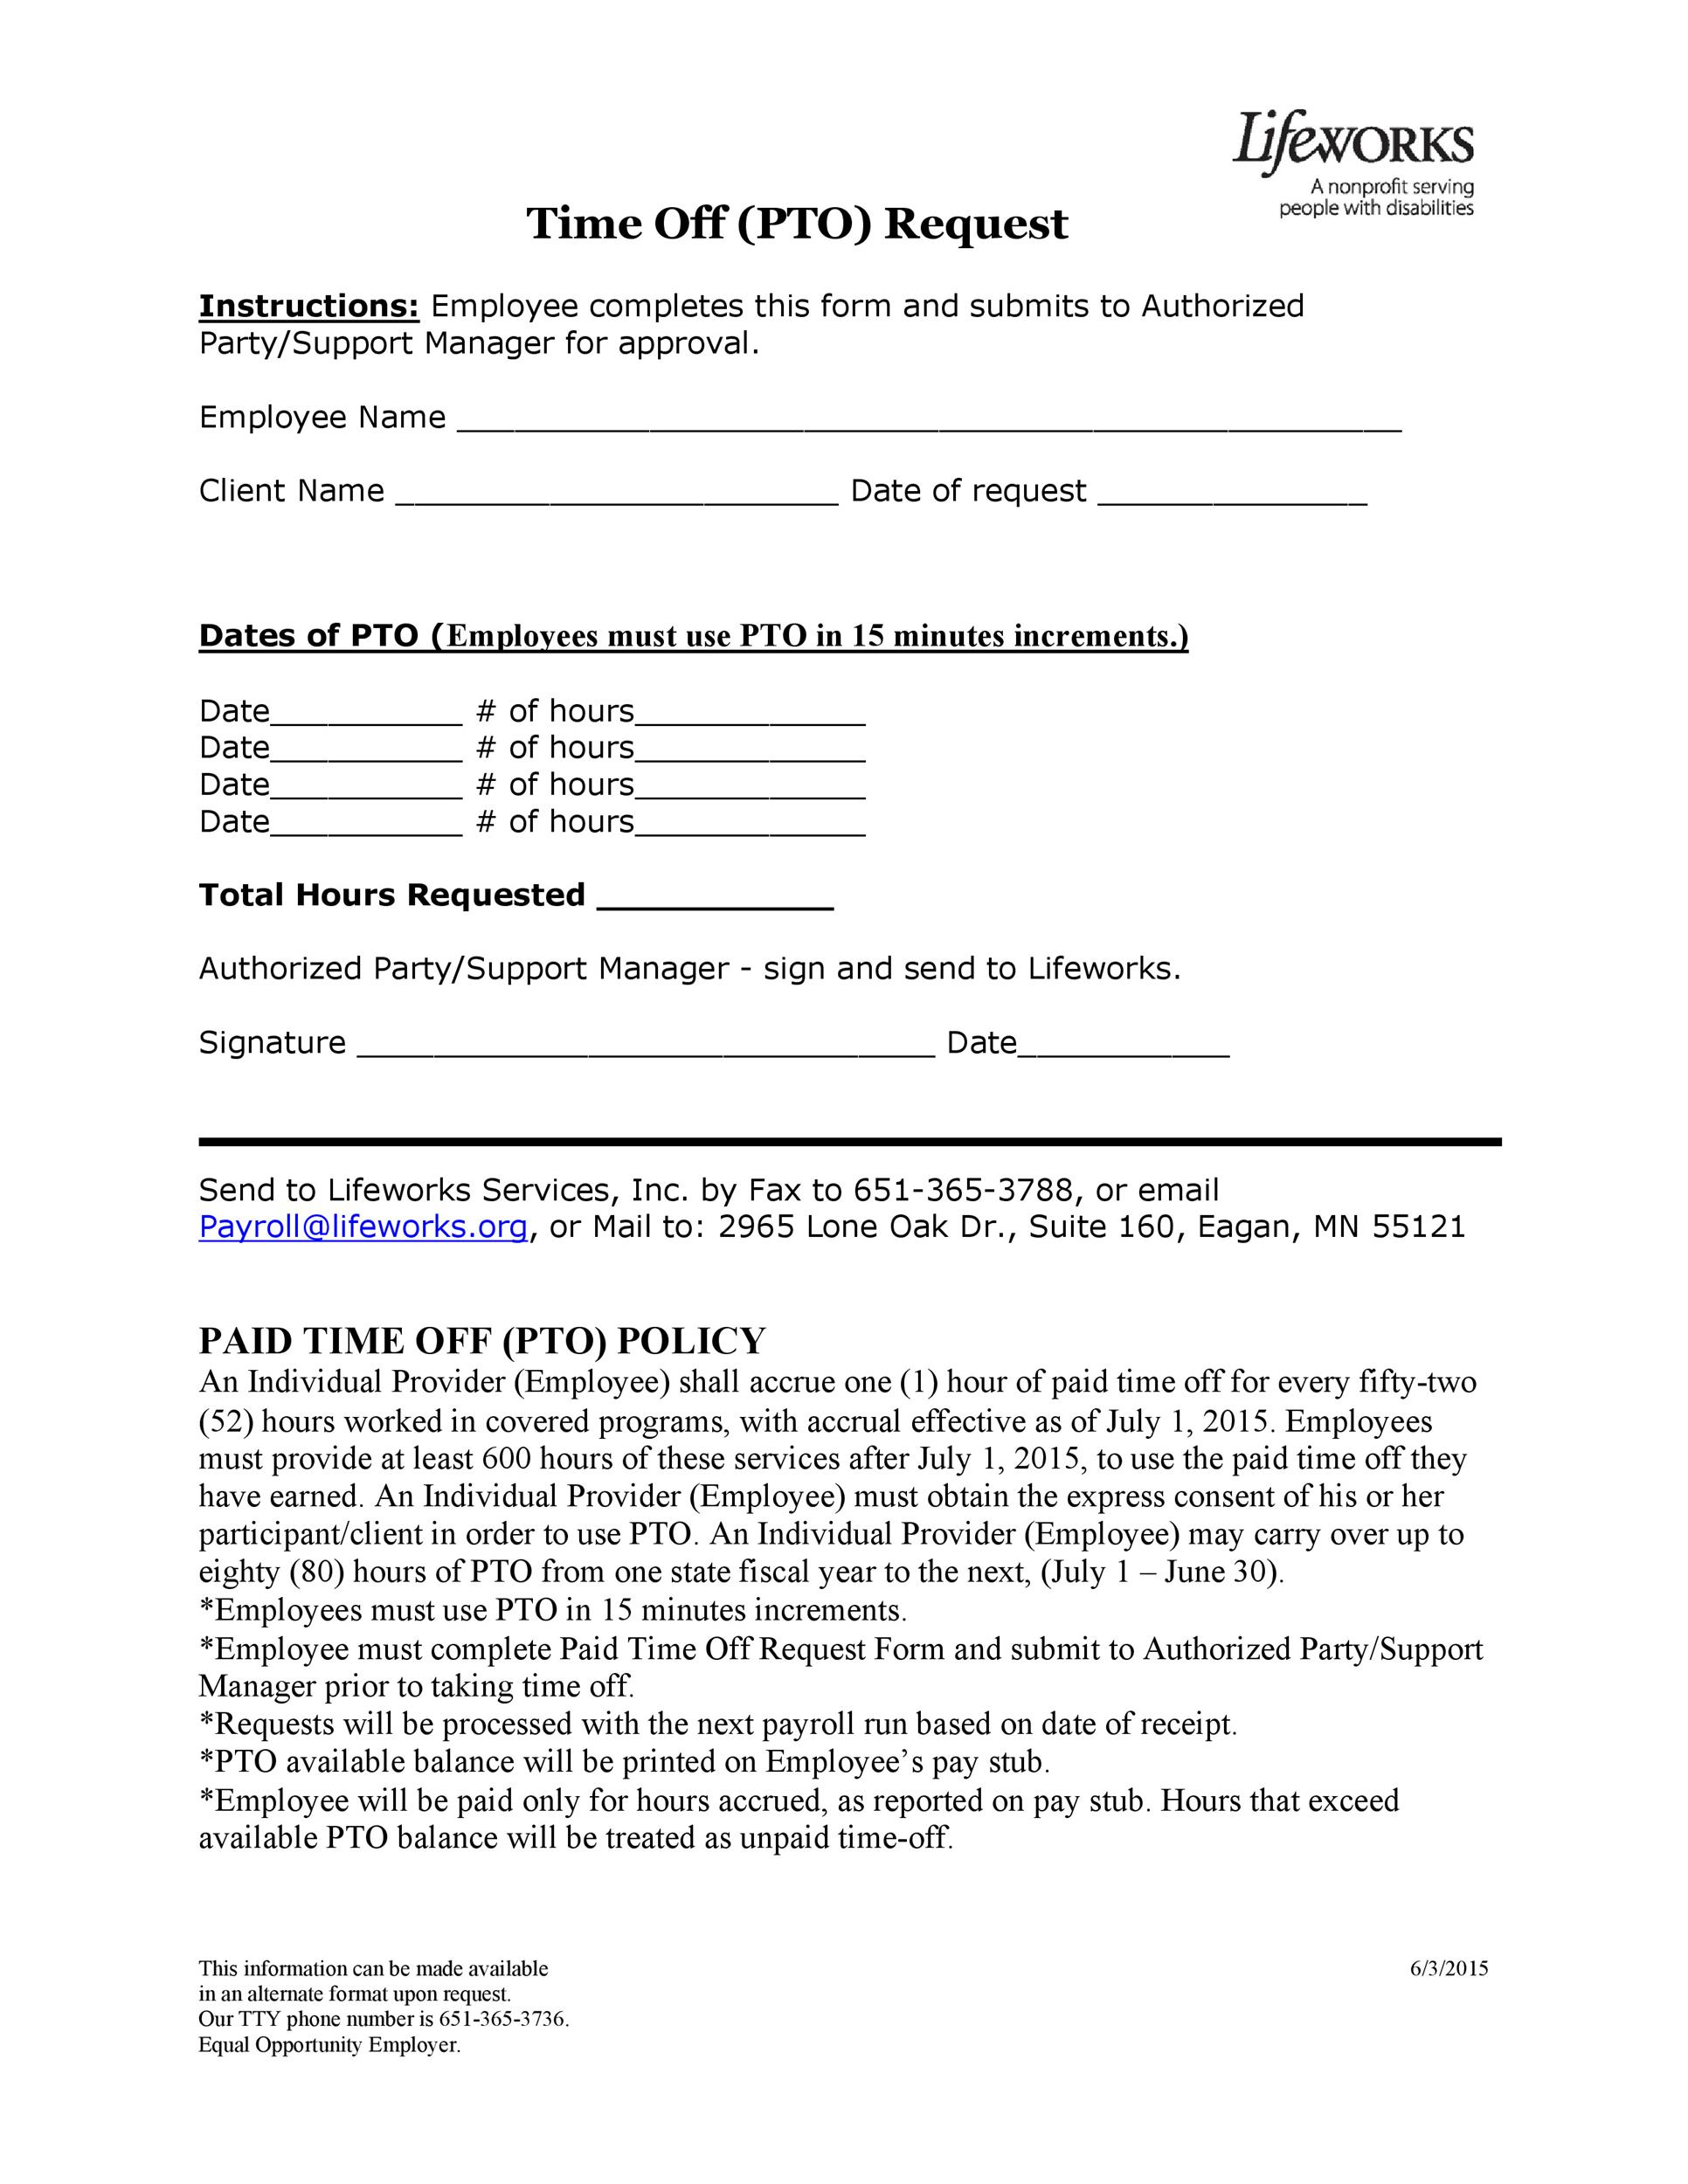 Sign Off Form Template. training sign off form. request off forms ...